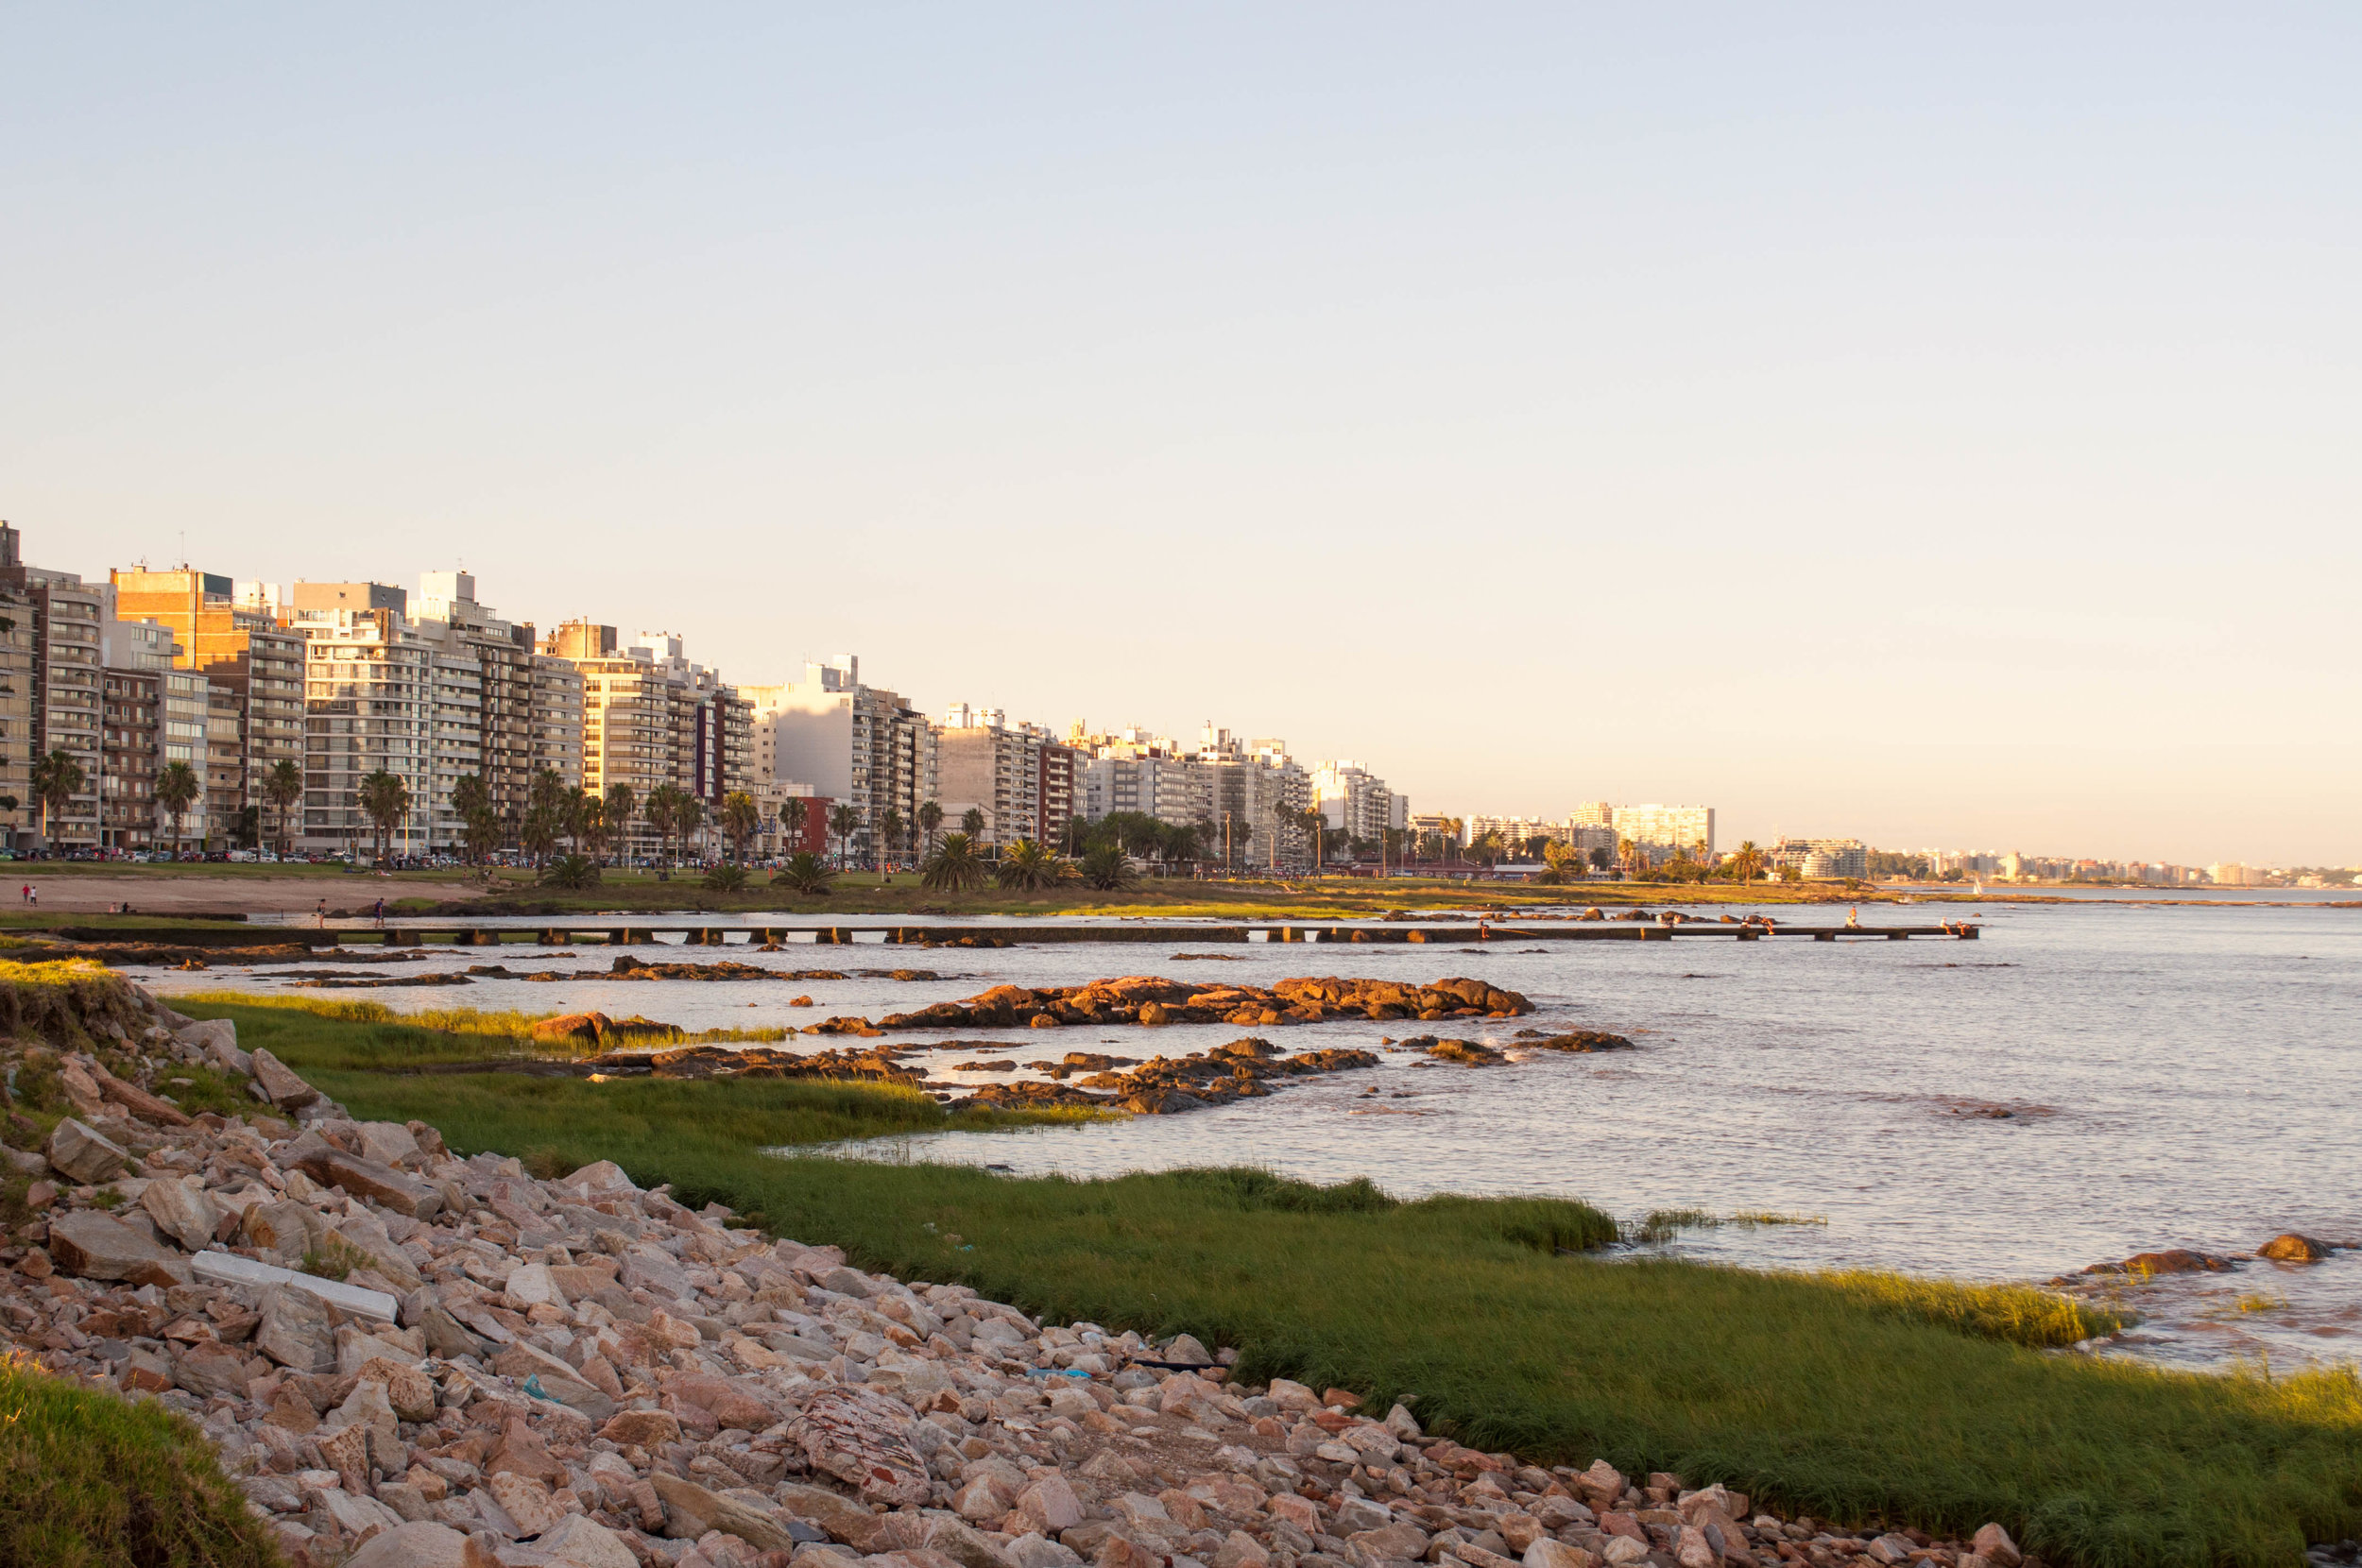 La rambla, things to do in Montevideo